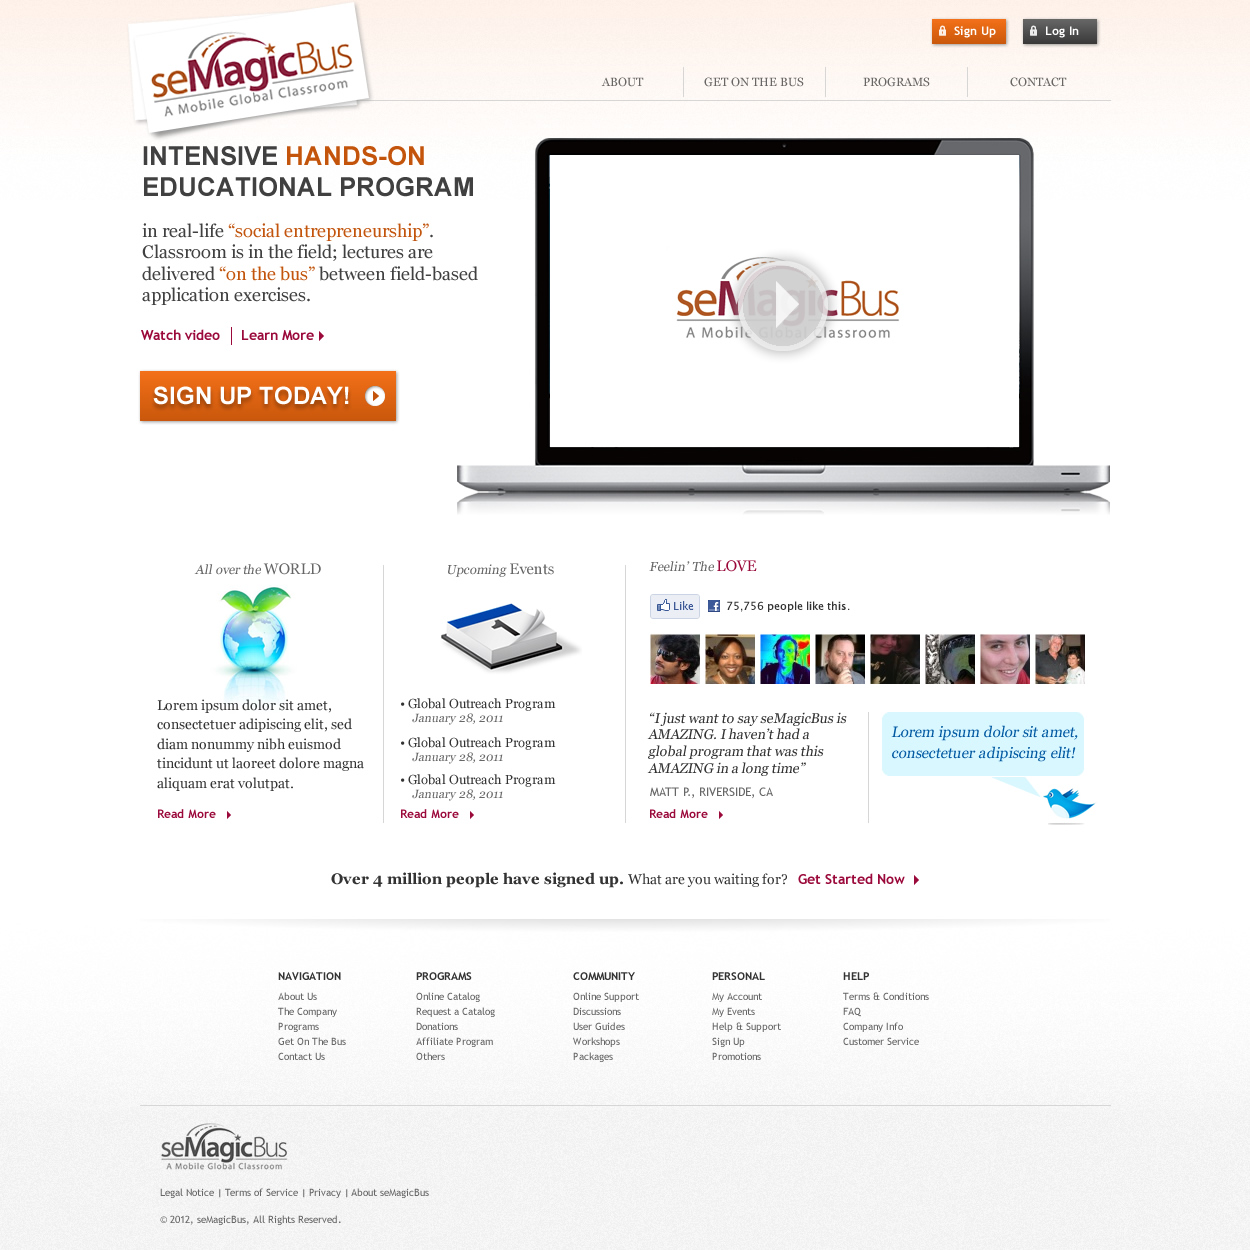 Web Page Design by johngabriel - Entry No. 20 in the Web Page Design Contest seMagicBus Website.